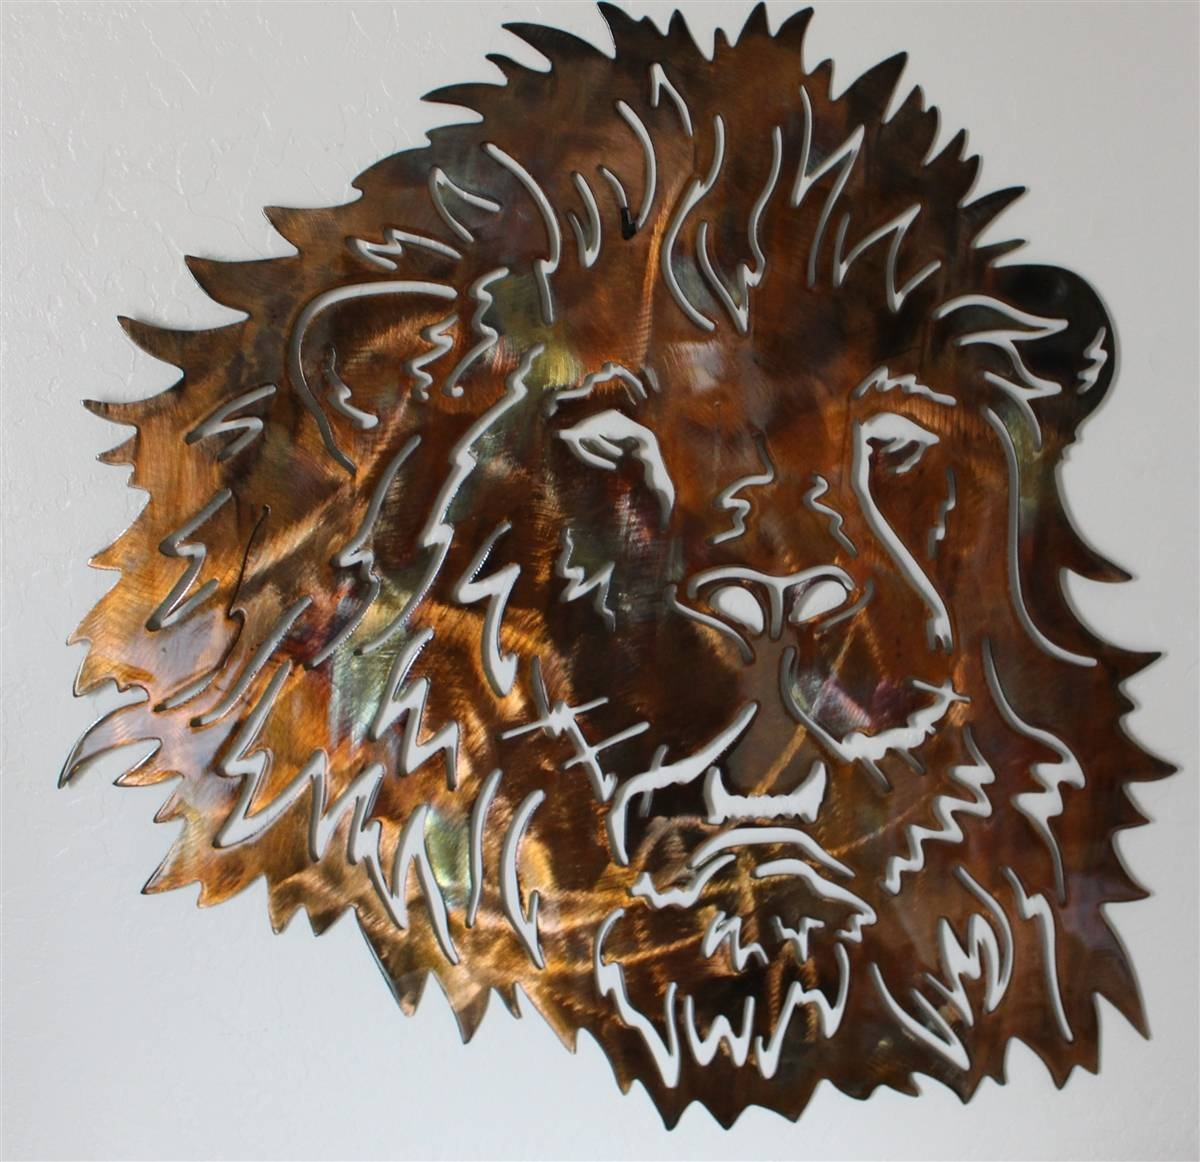 Lionhead 2 Pertaining To Most Up To Date Animal Metal Wall Art (View 3 of 20)